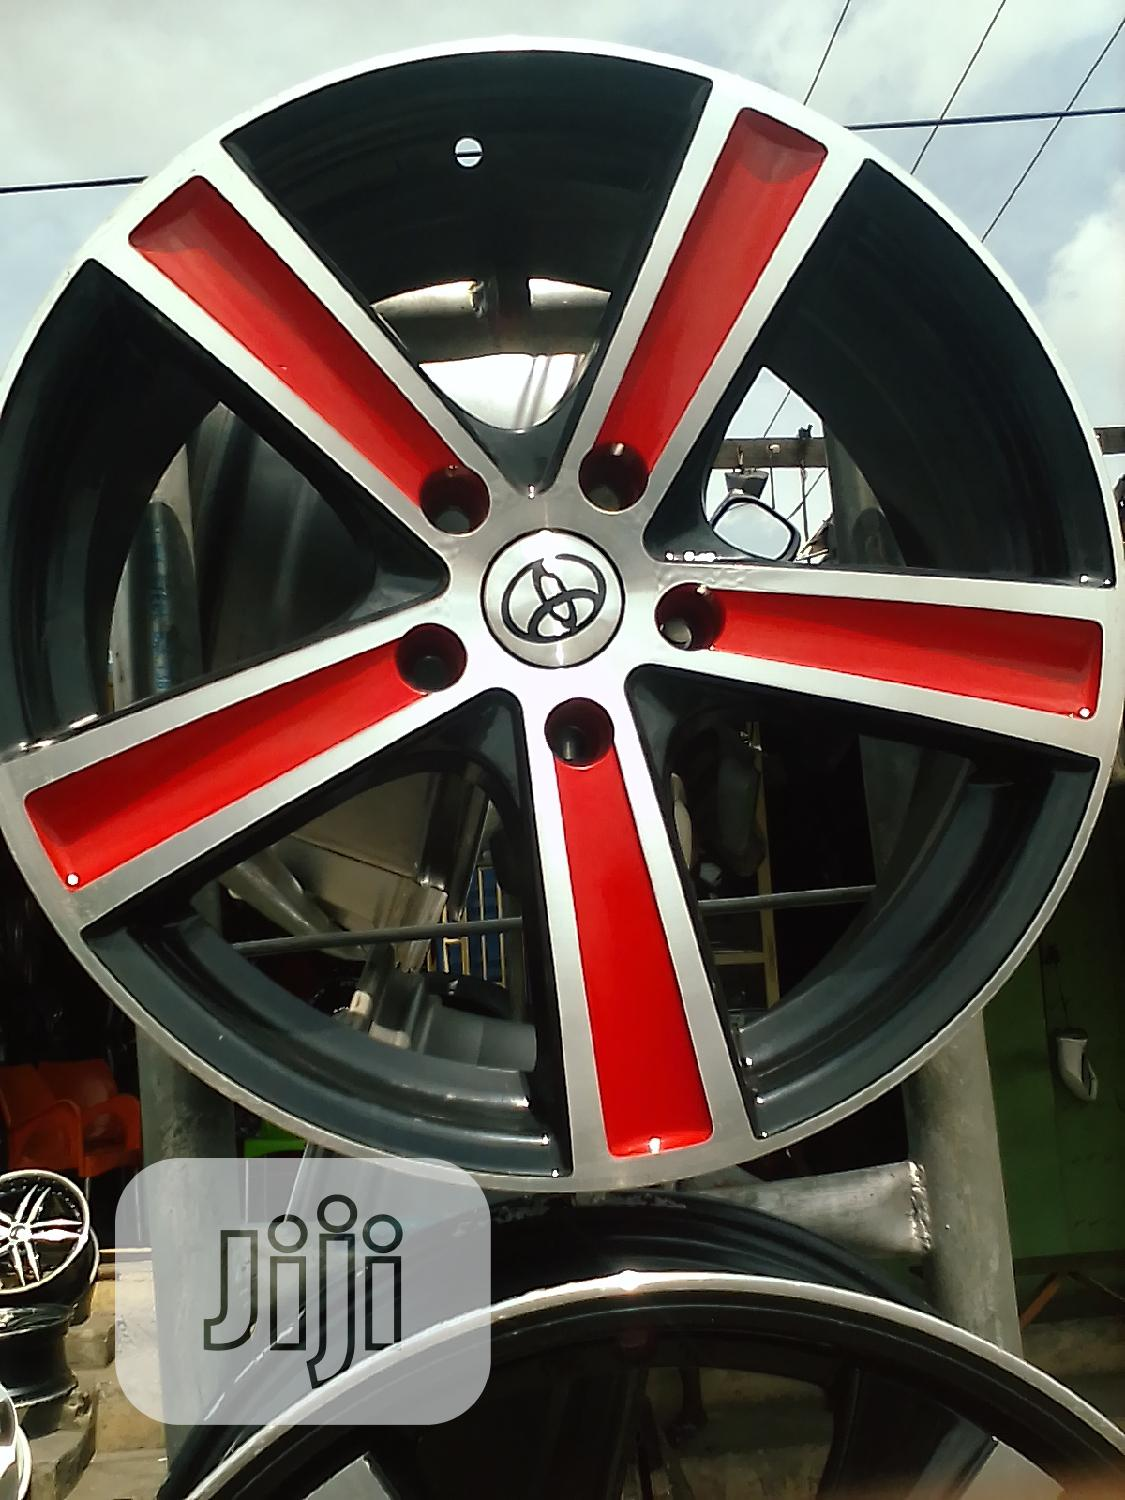 17 Inches Toyota Camry, Es350, Honda Accord Etc